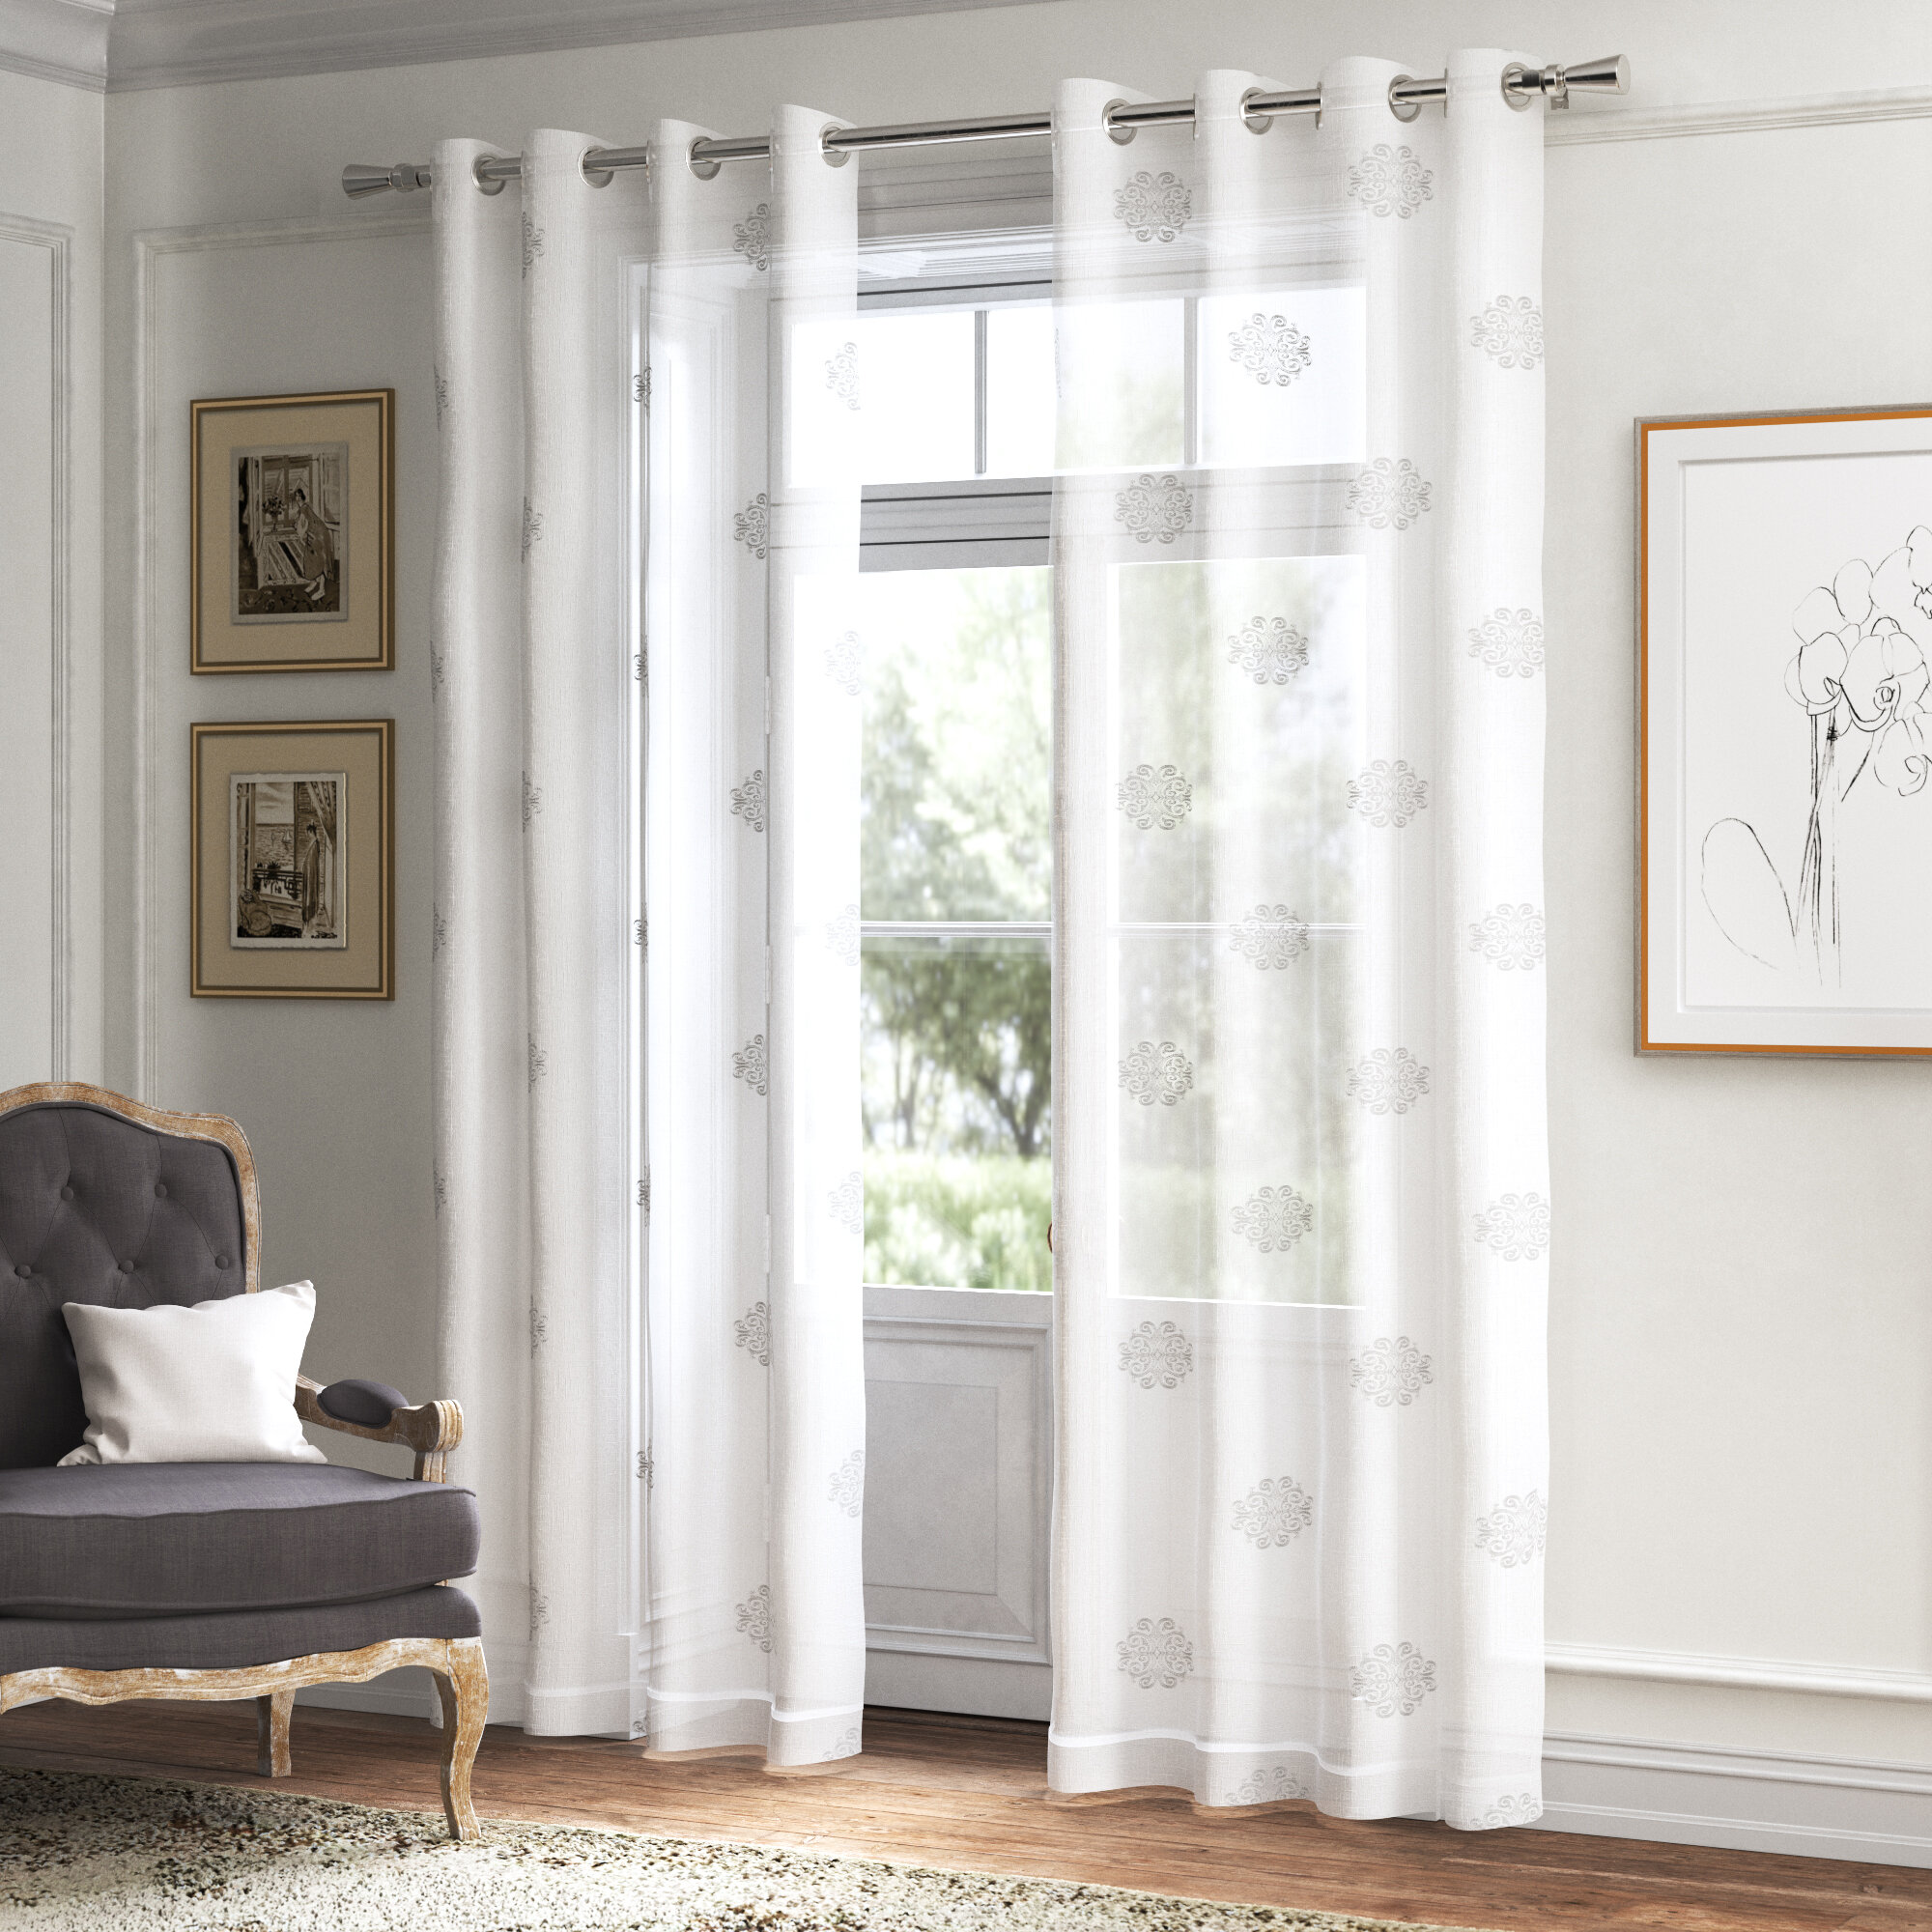 Nautical Curtains Drapes Free Shipping Over 35 Wayfair